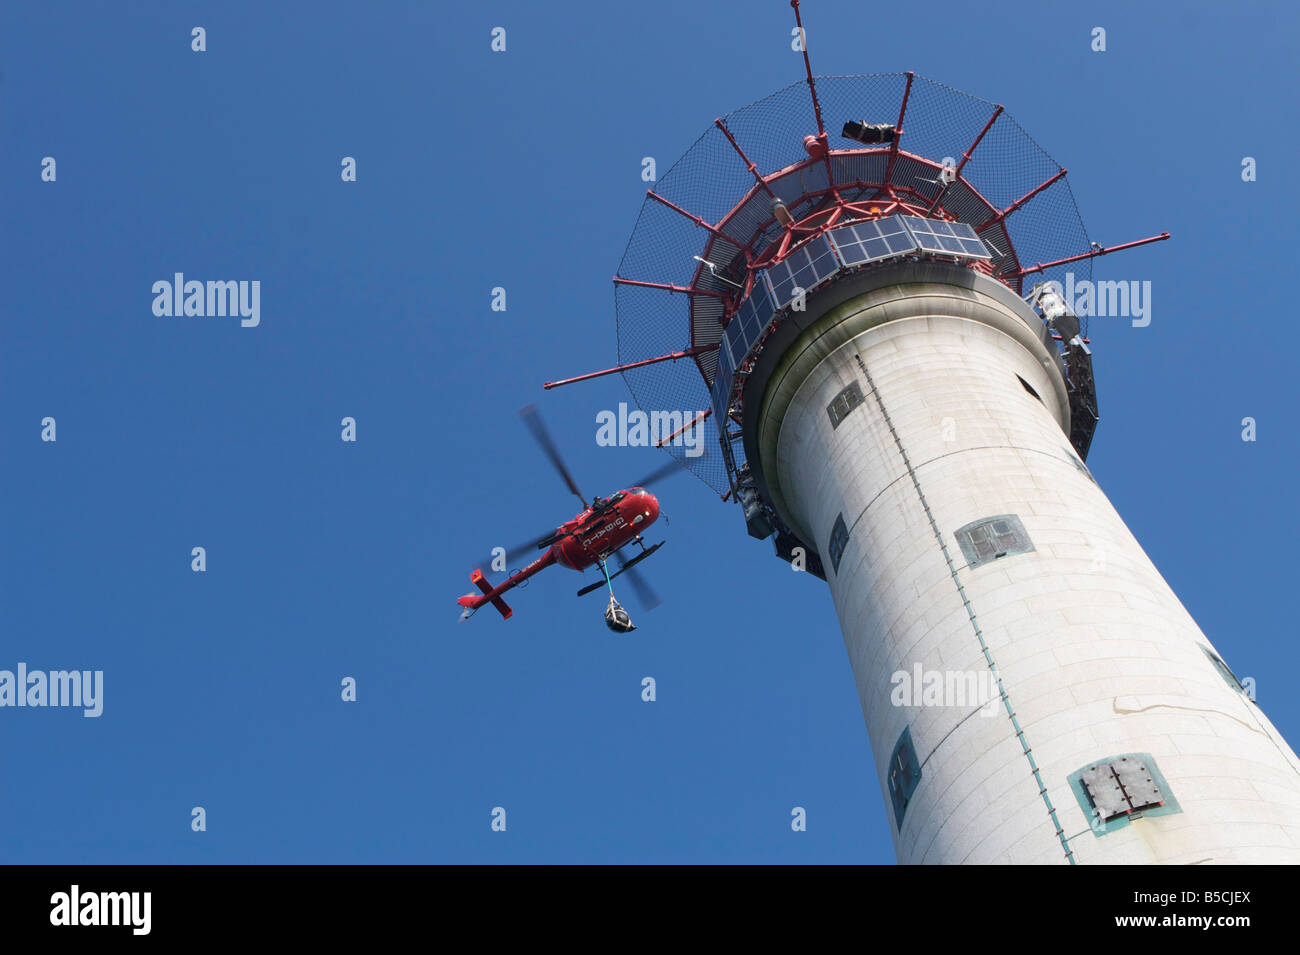 Helicopter dropping supplies at lighthouse - Stock Image